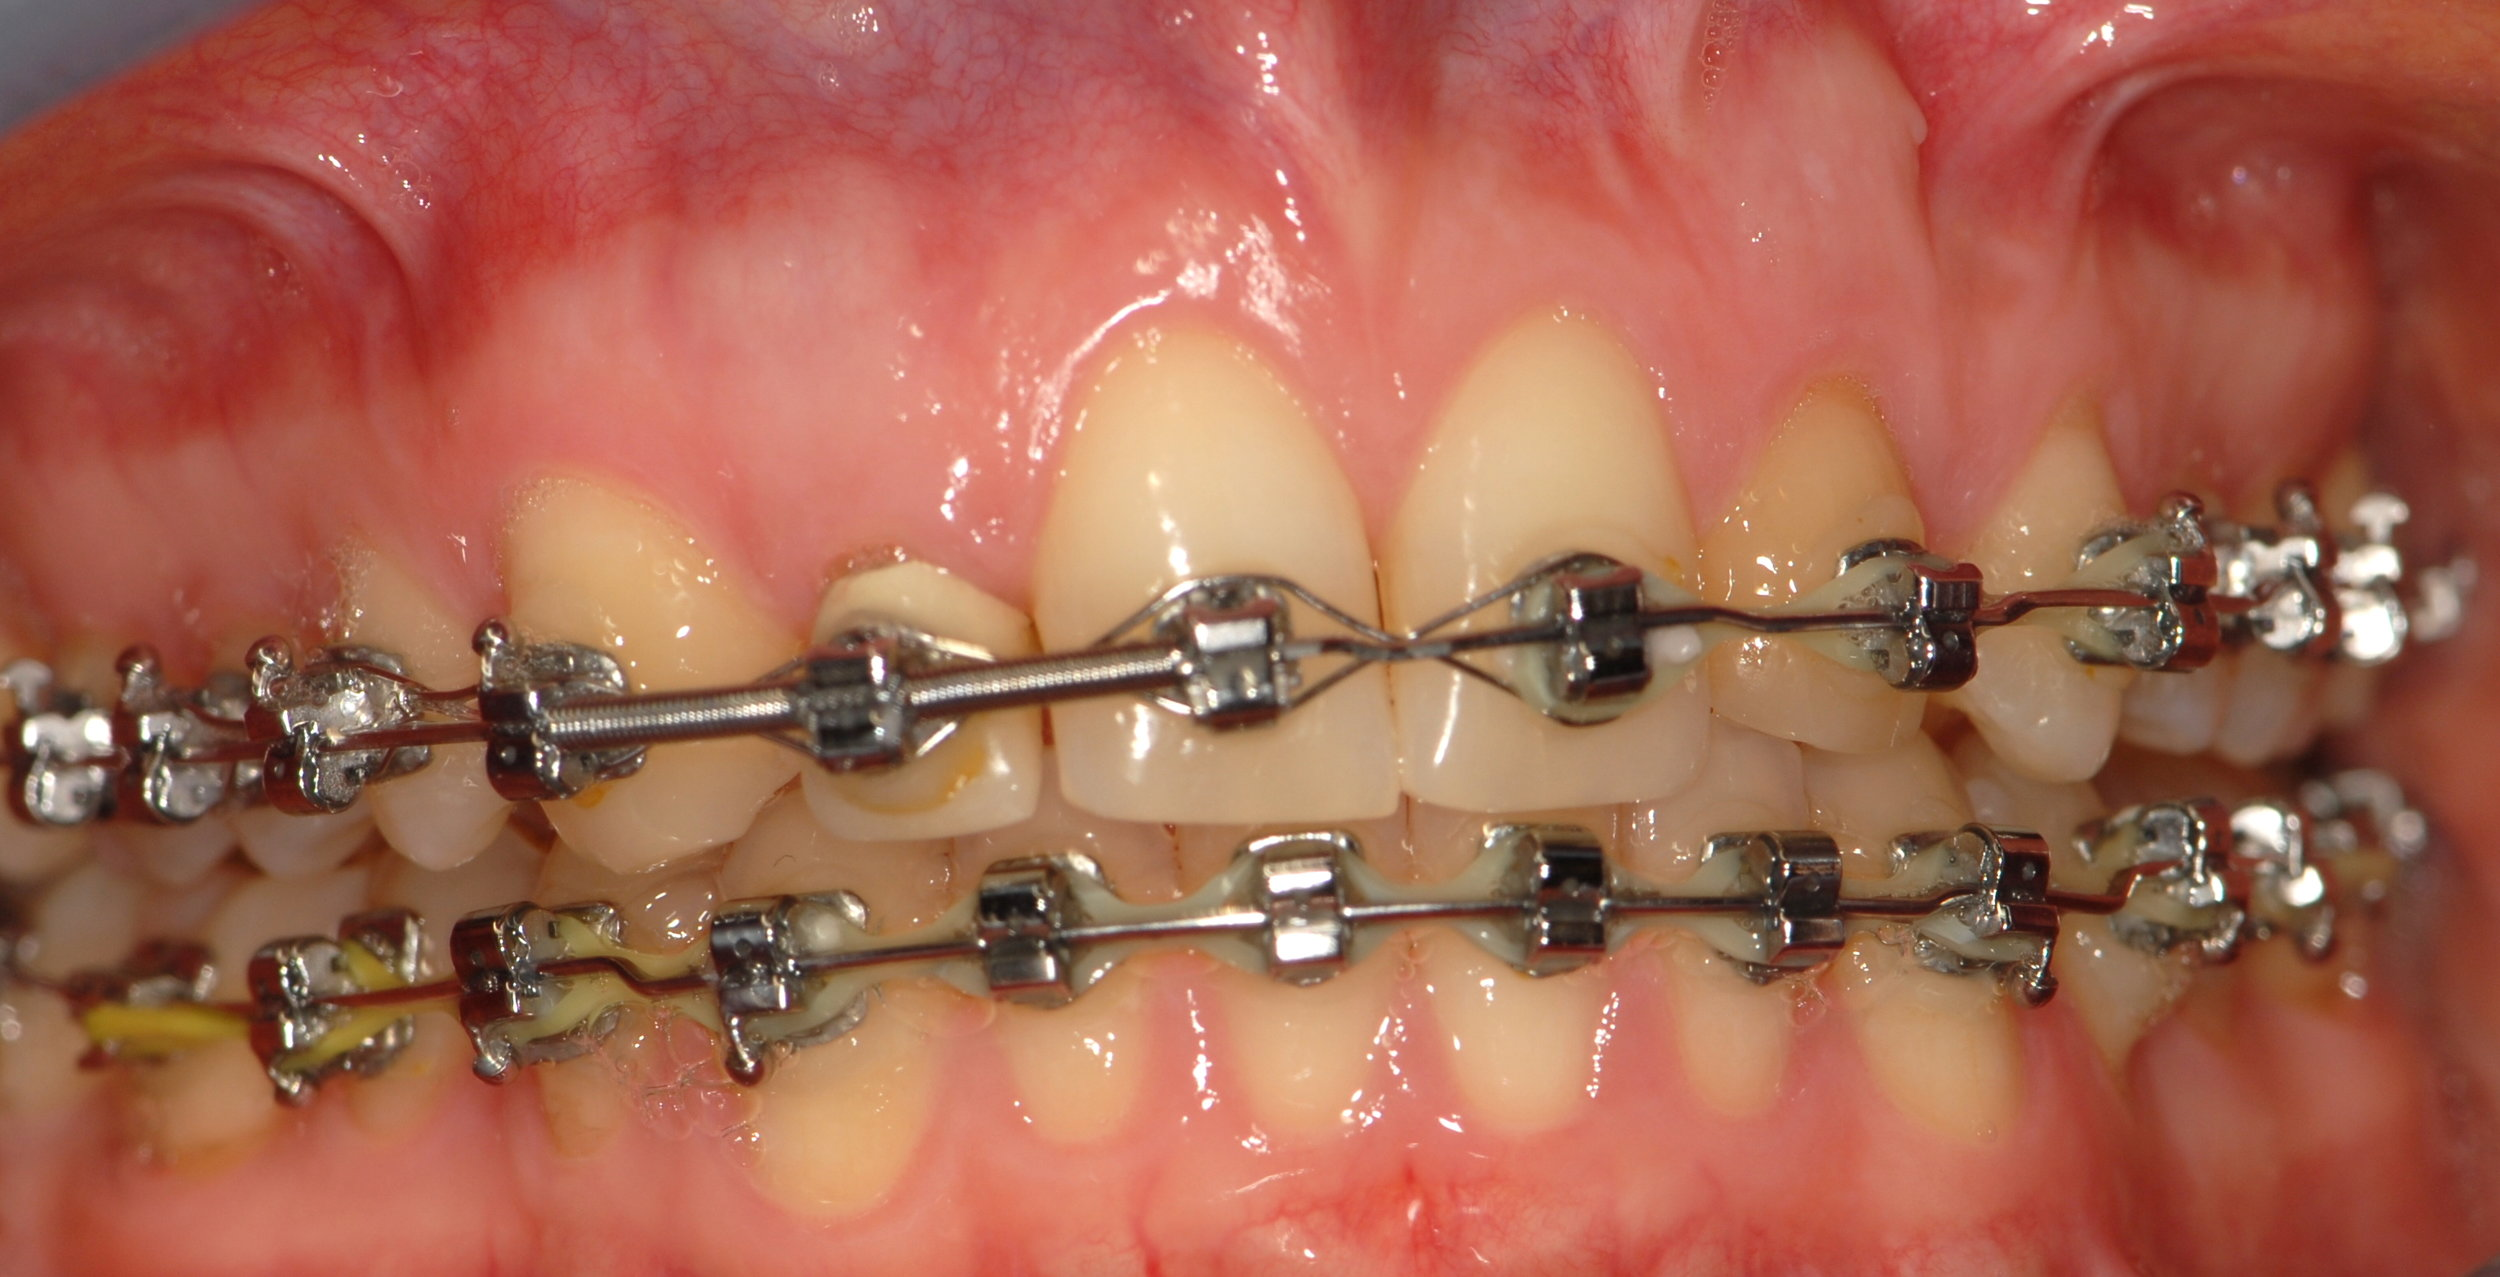 Orthodontics to create space for implant and restorations